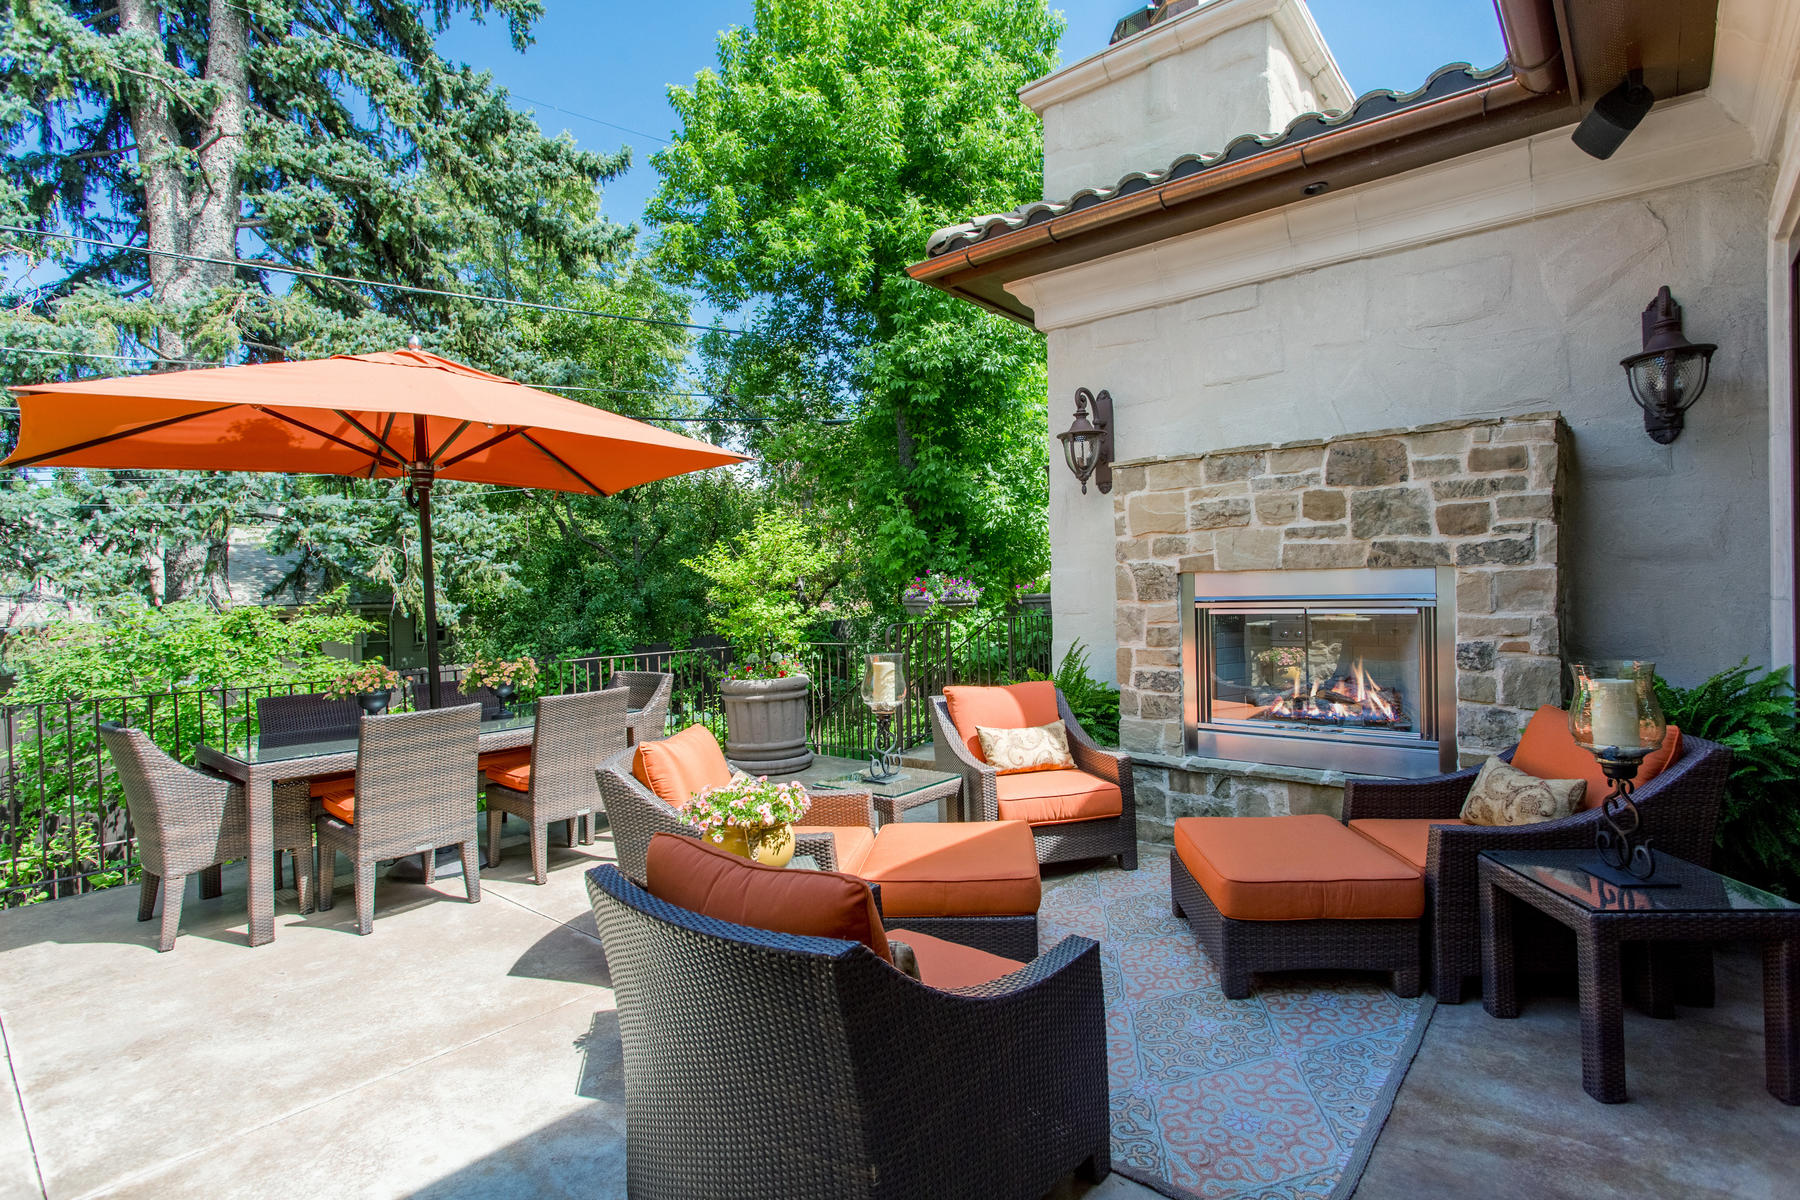 Additional photo for property listing at This Tuscan Inspired Two-Story Does Not Disappoint 210 Jasmine Street Denver, Colorado 80220 United States